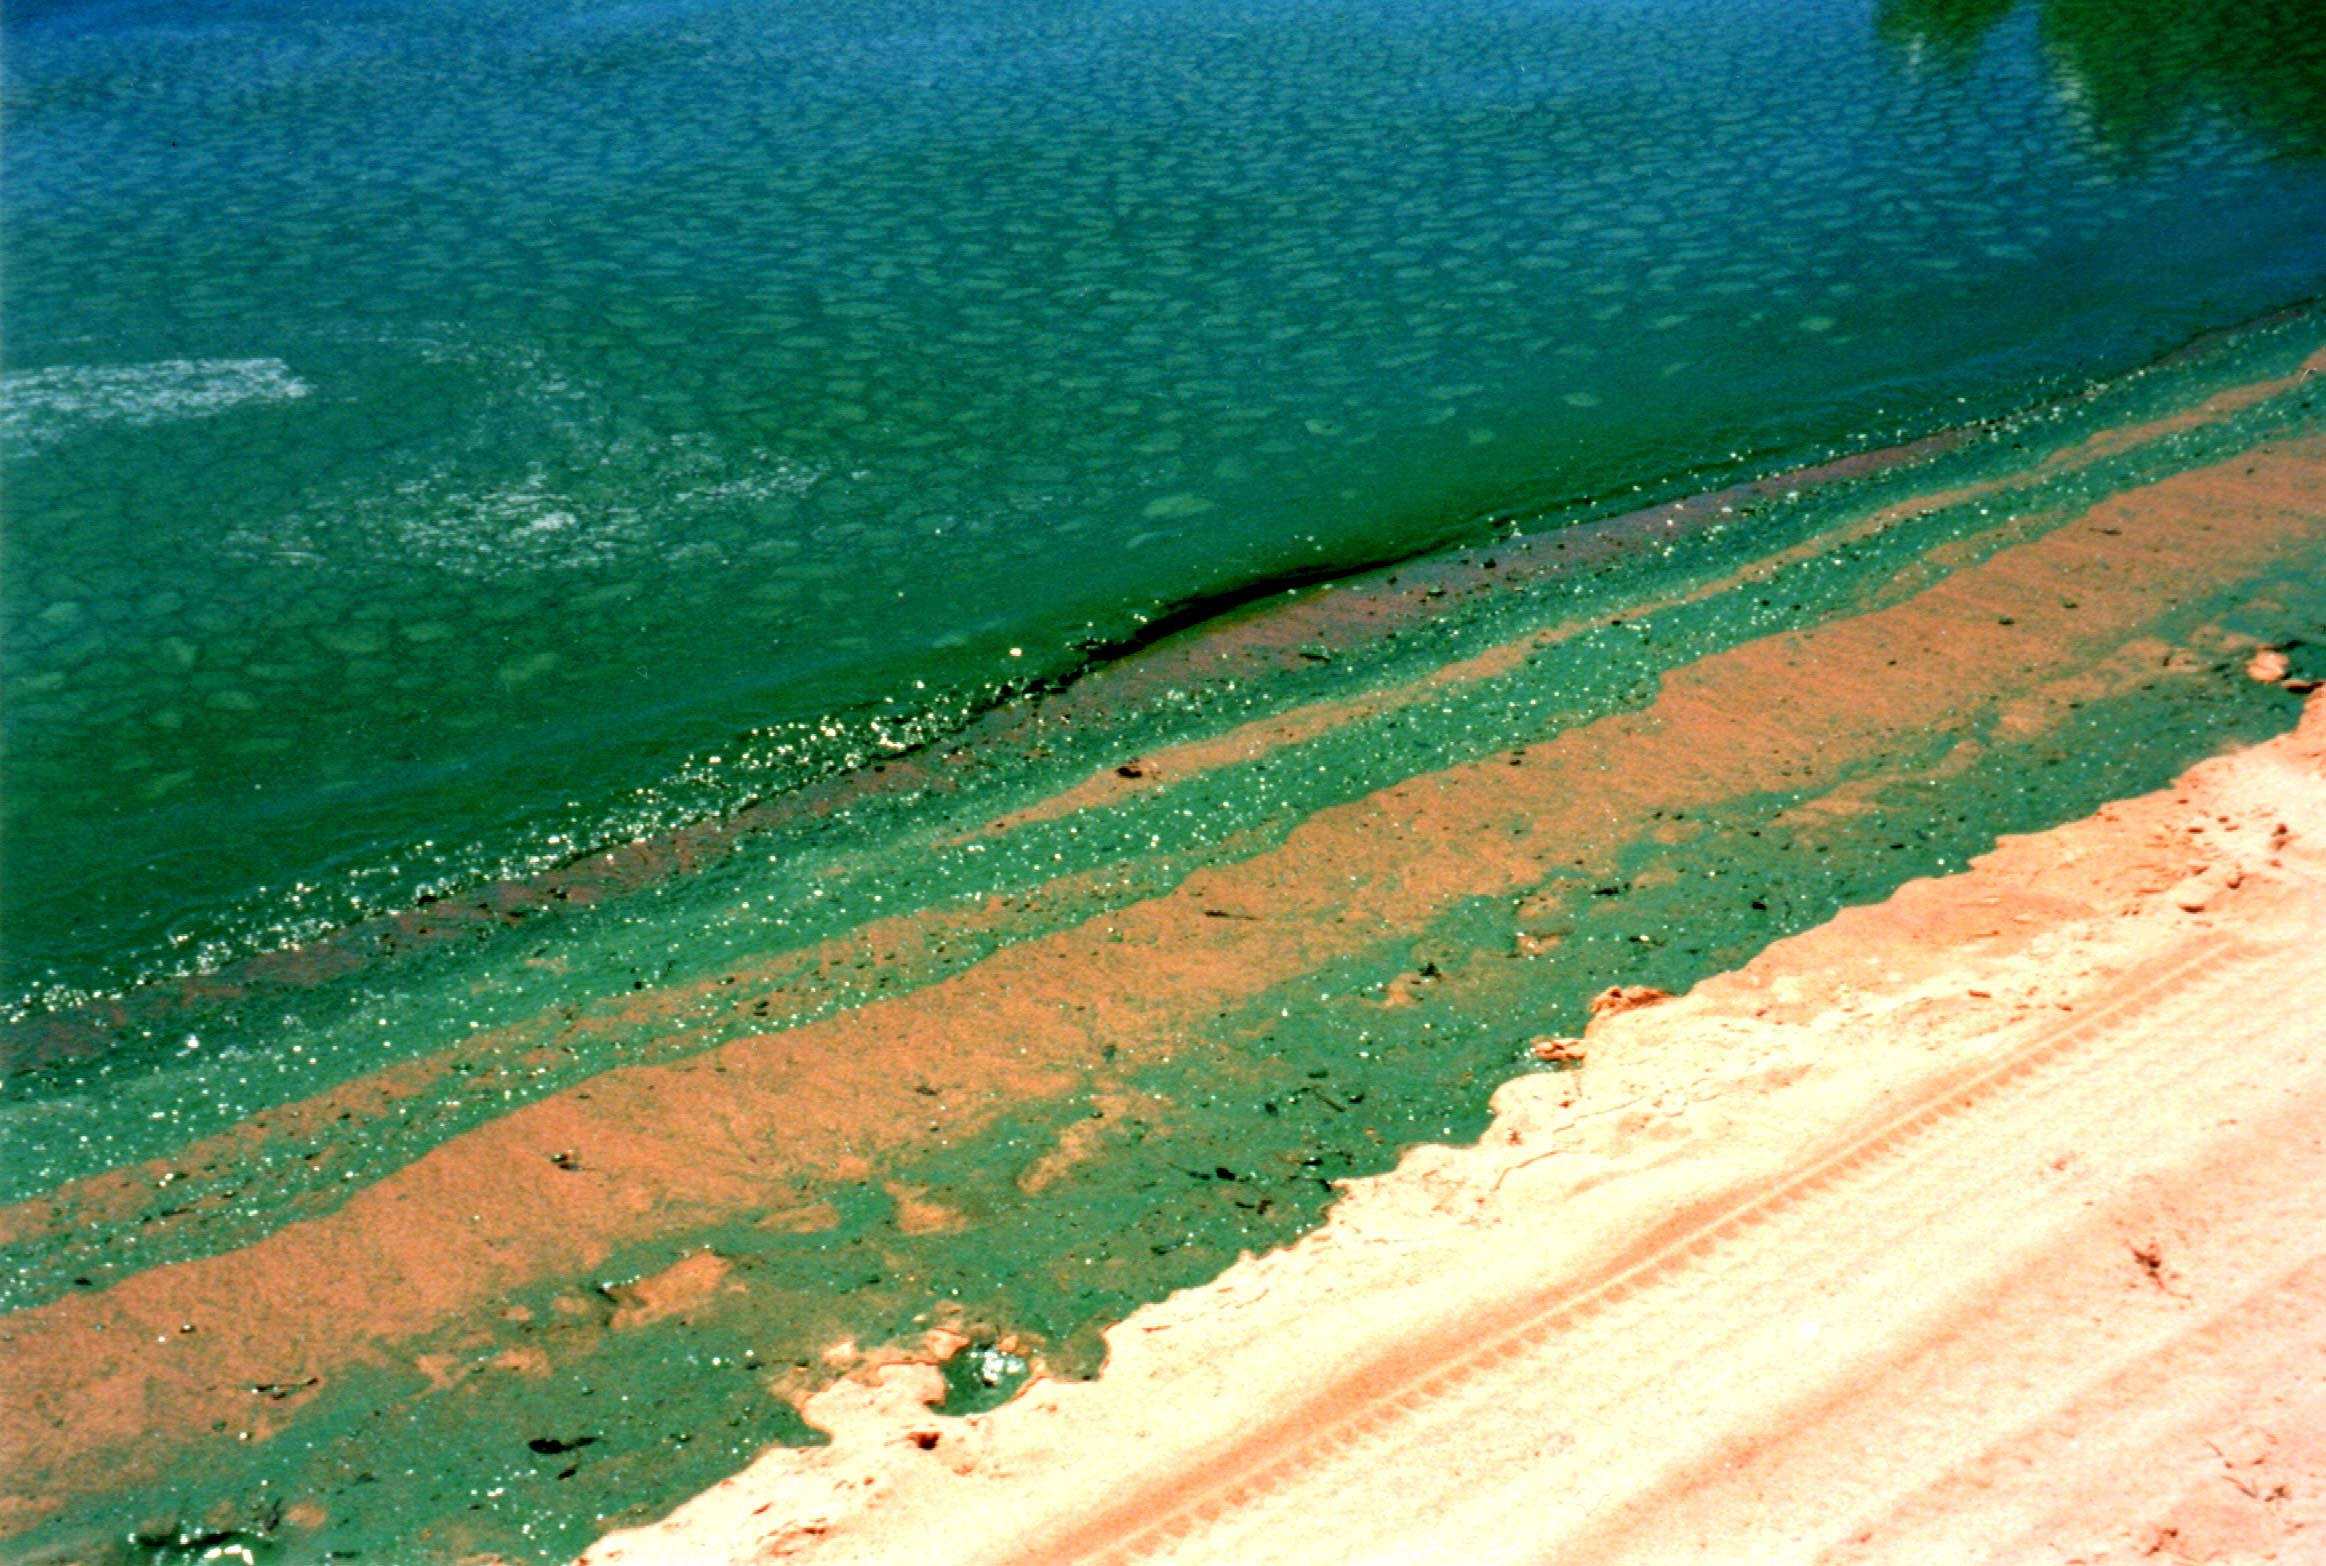 Microcystis algal bloom Matilda Bay